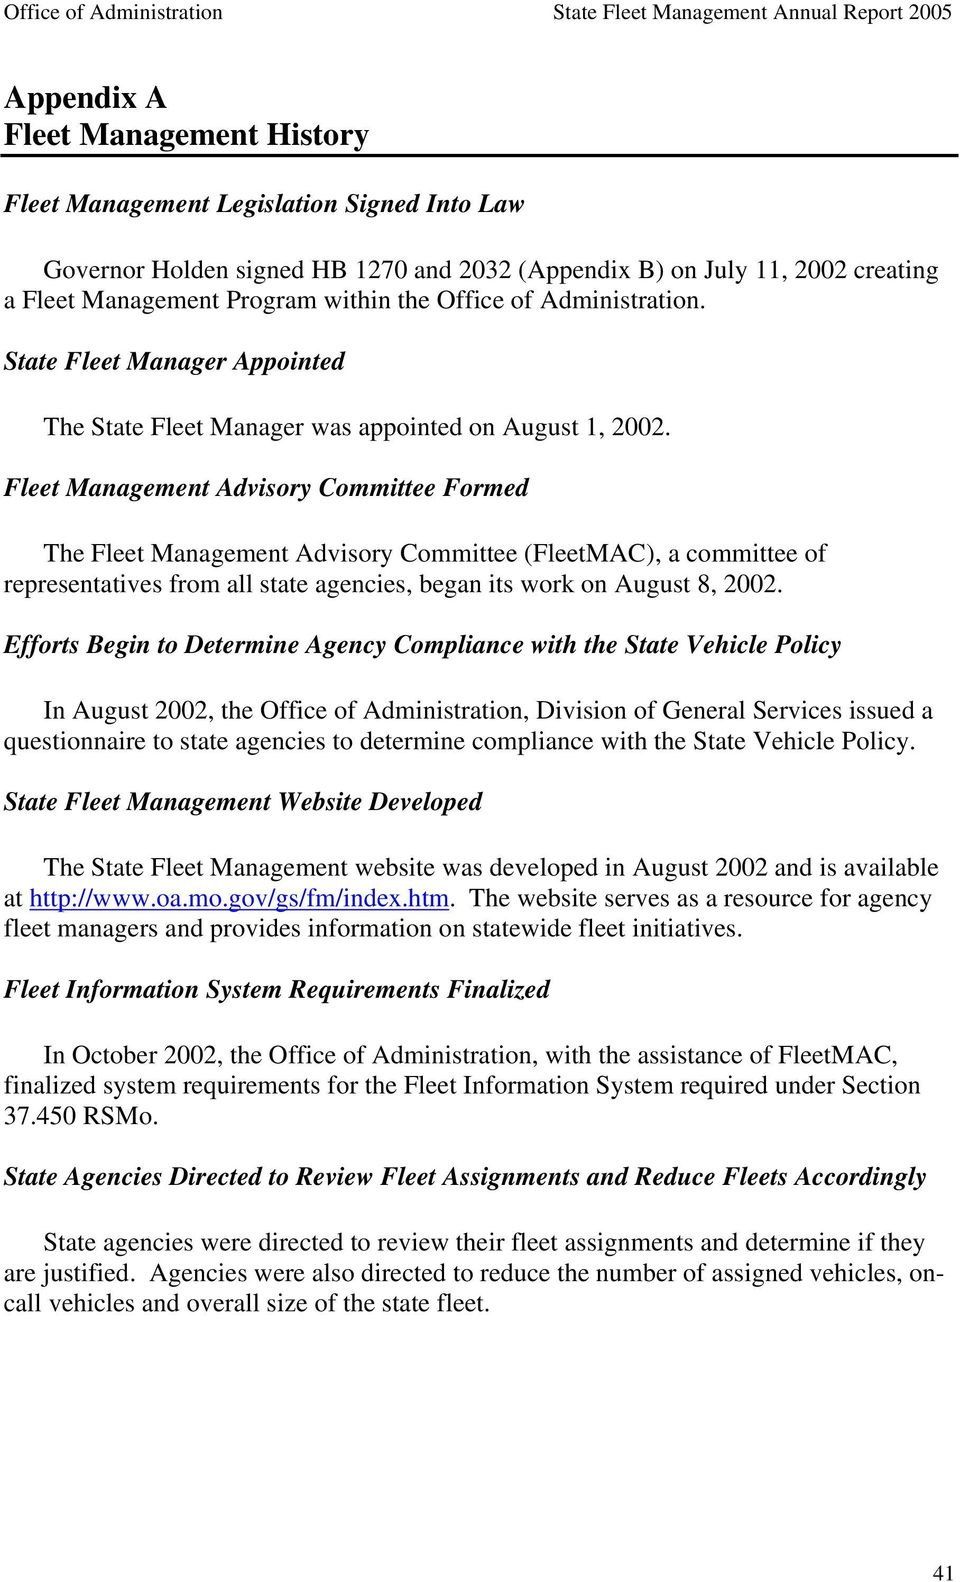 Fleet Management Advisory Committee Formed The Fleet Management Advisory Committee (FleetMAC), a committee of representatives from all state agencies, began its work on August 8, 2002.